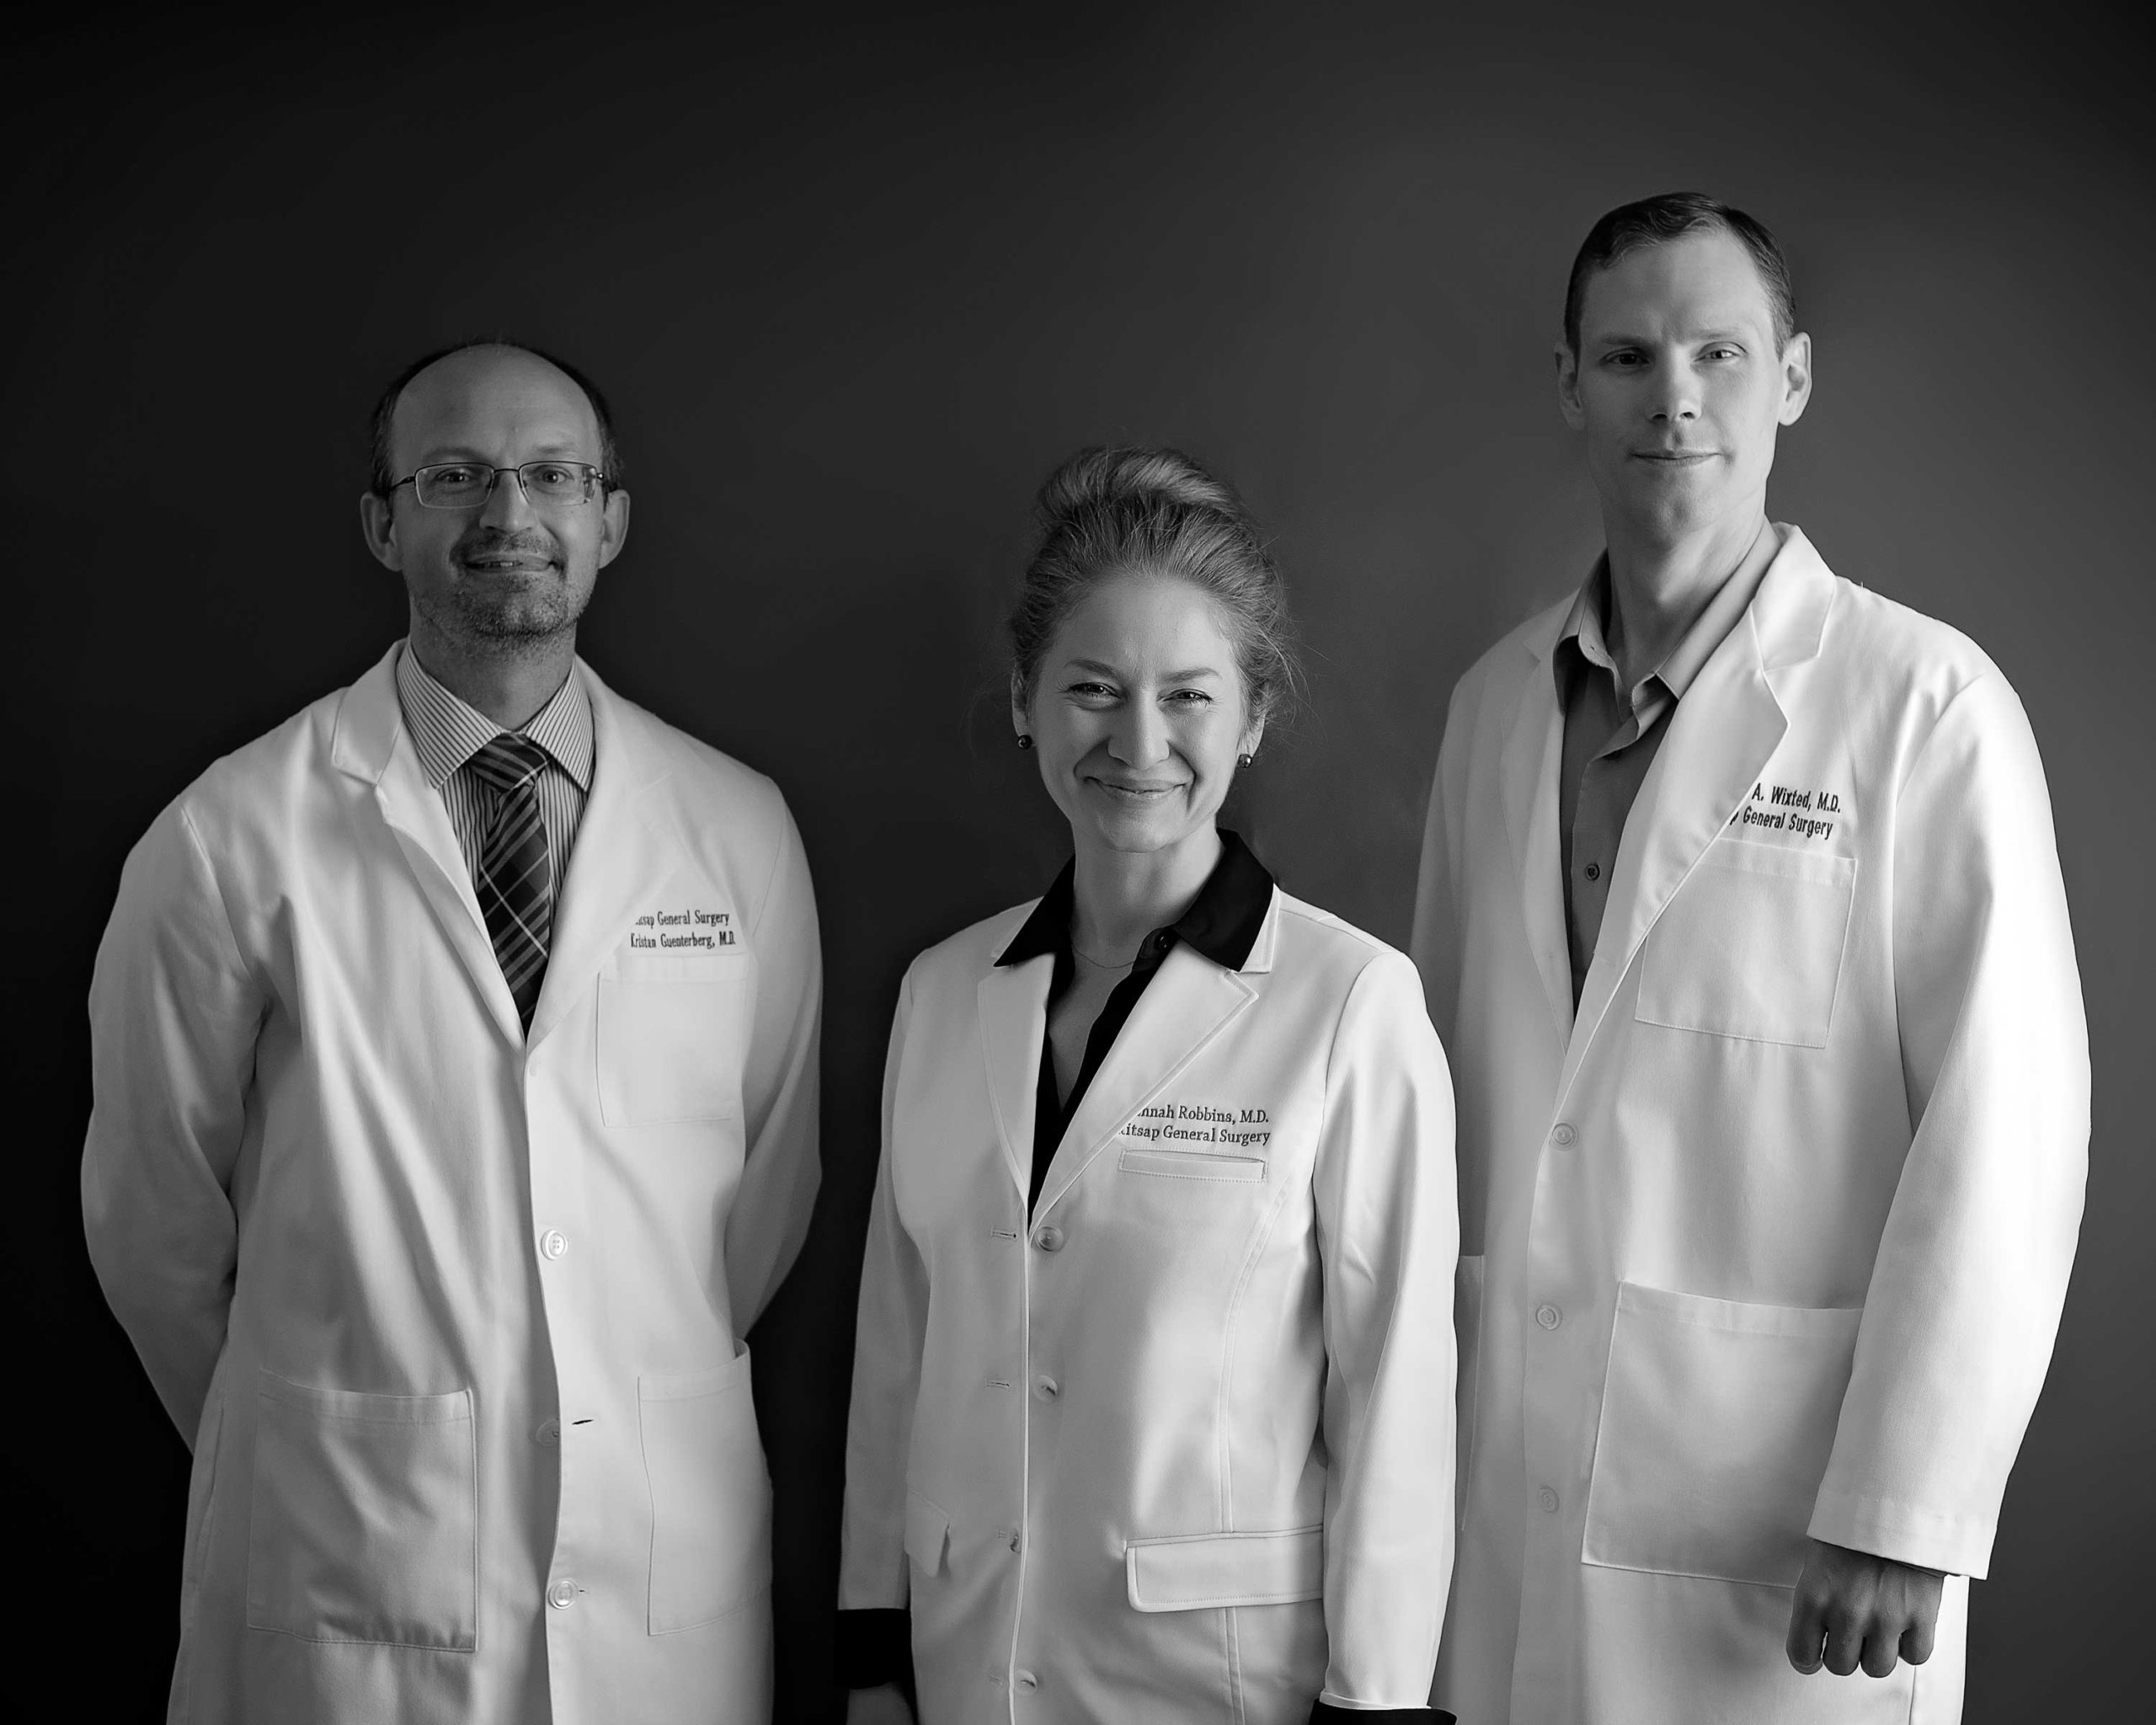 Your local surgeons specializing in Hernia Repair, Gallbladder, Breast Surgery, Colonoscopy, Colorectal Surgery Silverdale WA   Kitsap County   Kitsap General Surgery